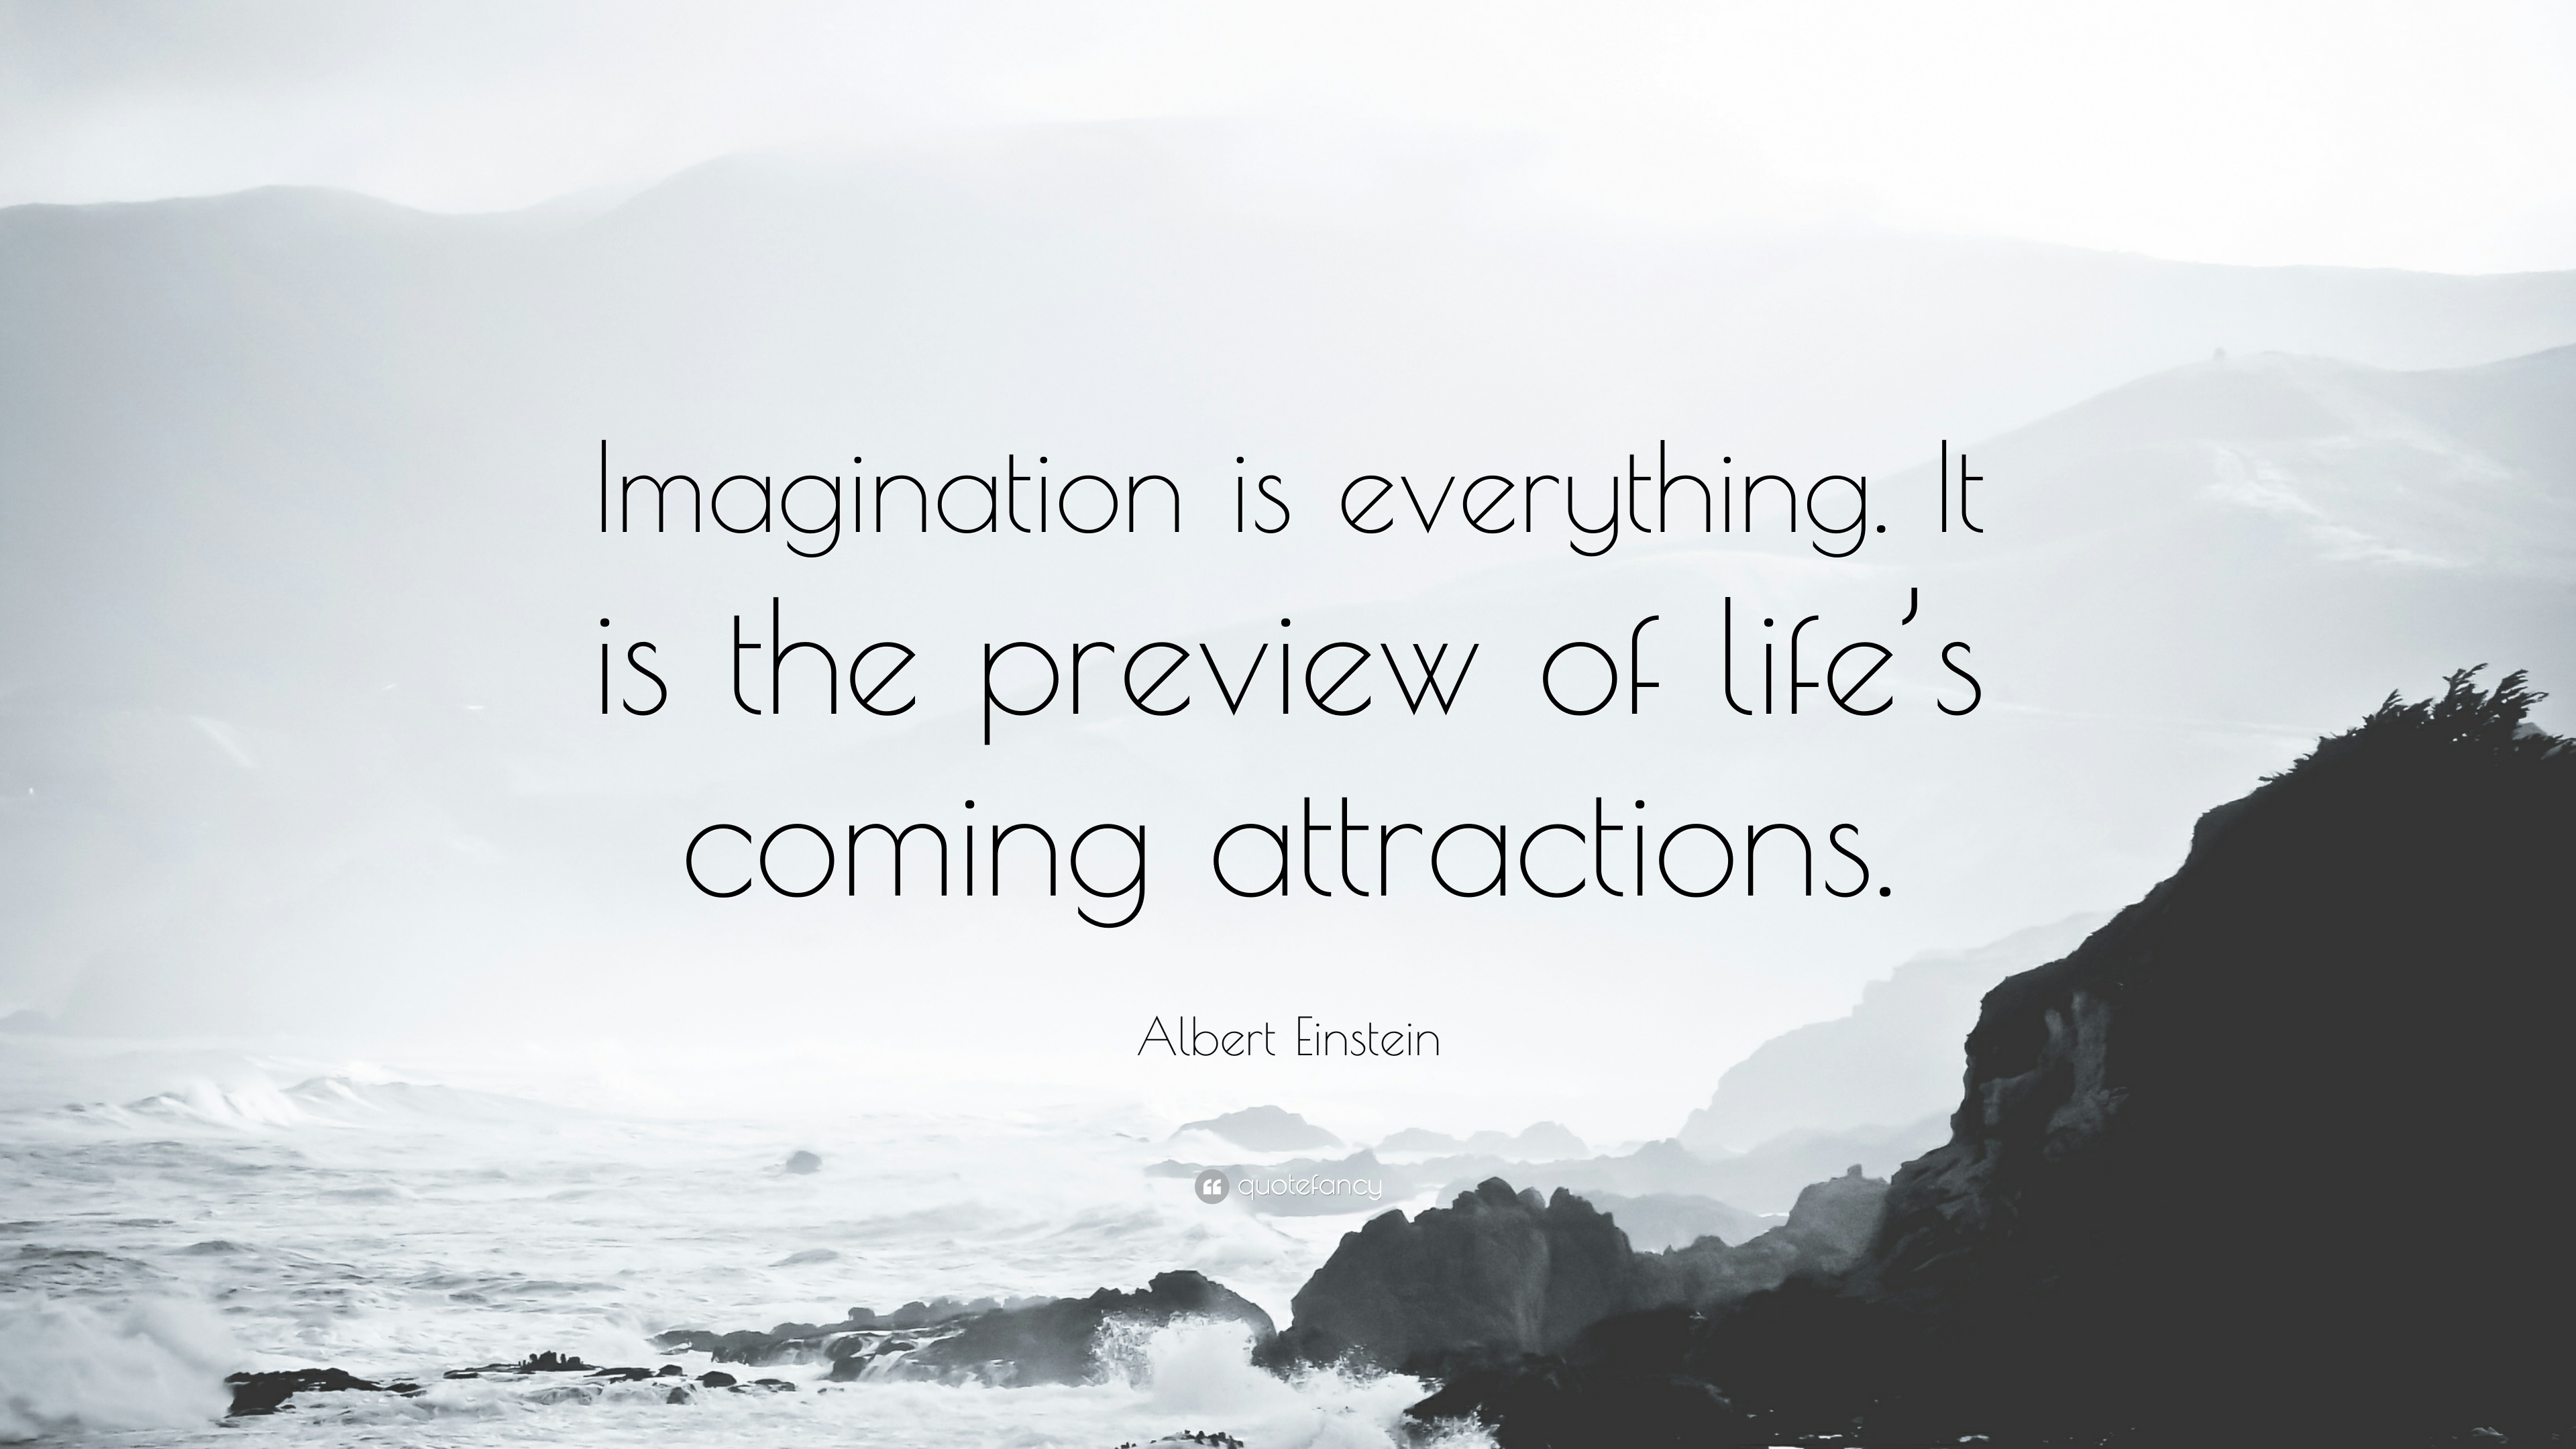 imagination regarding life